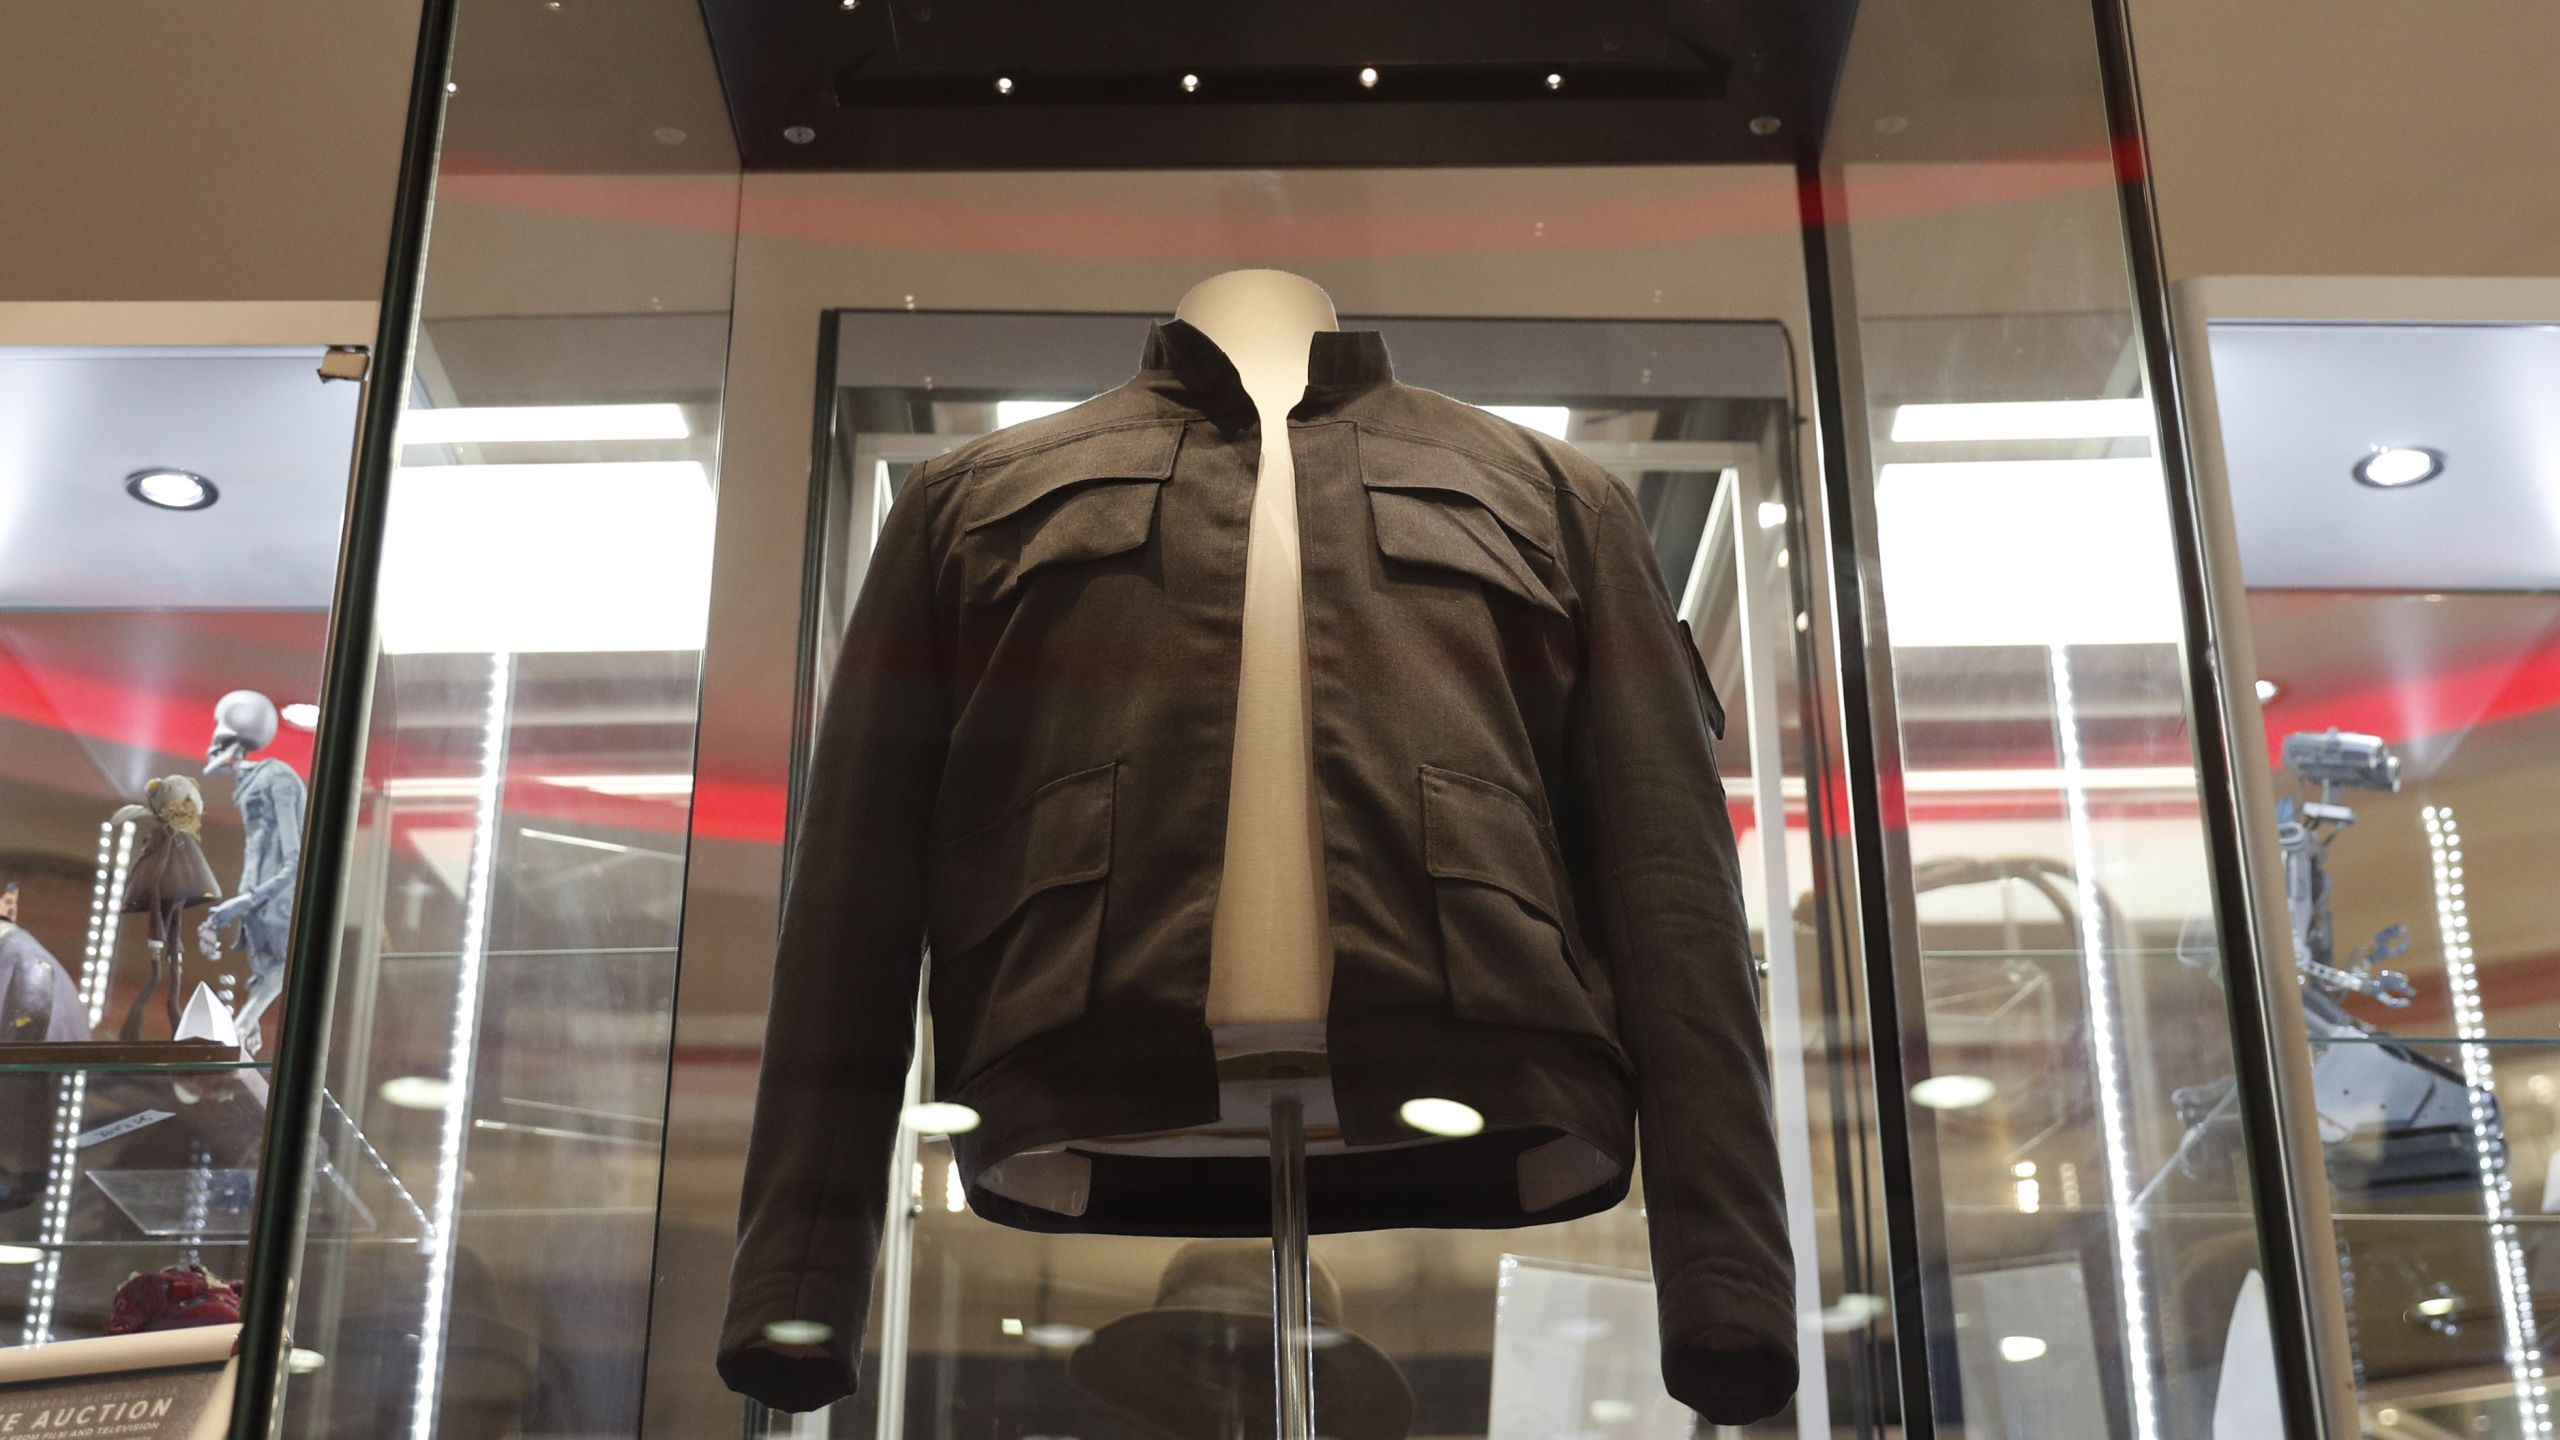 The jacket worn by Harrison Ford's character Han Solo in the 'Star Wars: The Empire Strikes Back' film is on show at the Imax in central London on September 6, 2018 and will be auctioned on September 20. (Credit: ADRIAN DENNIS/AFP/Getty Images)